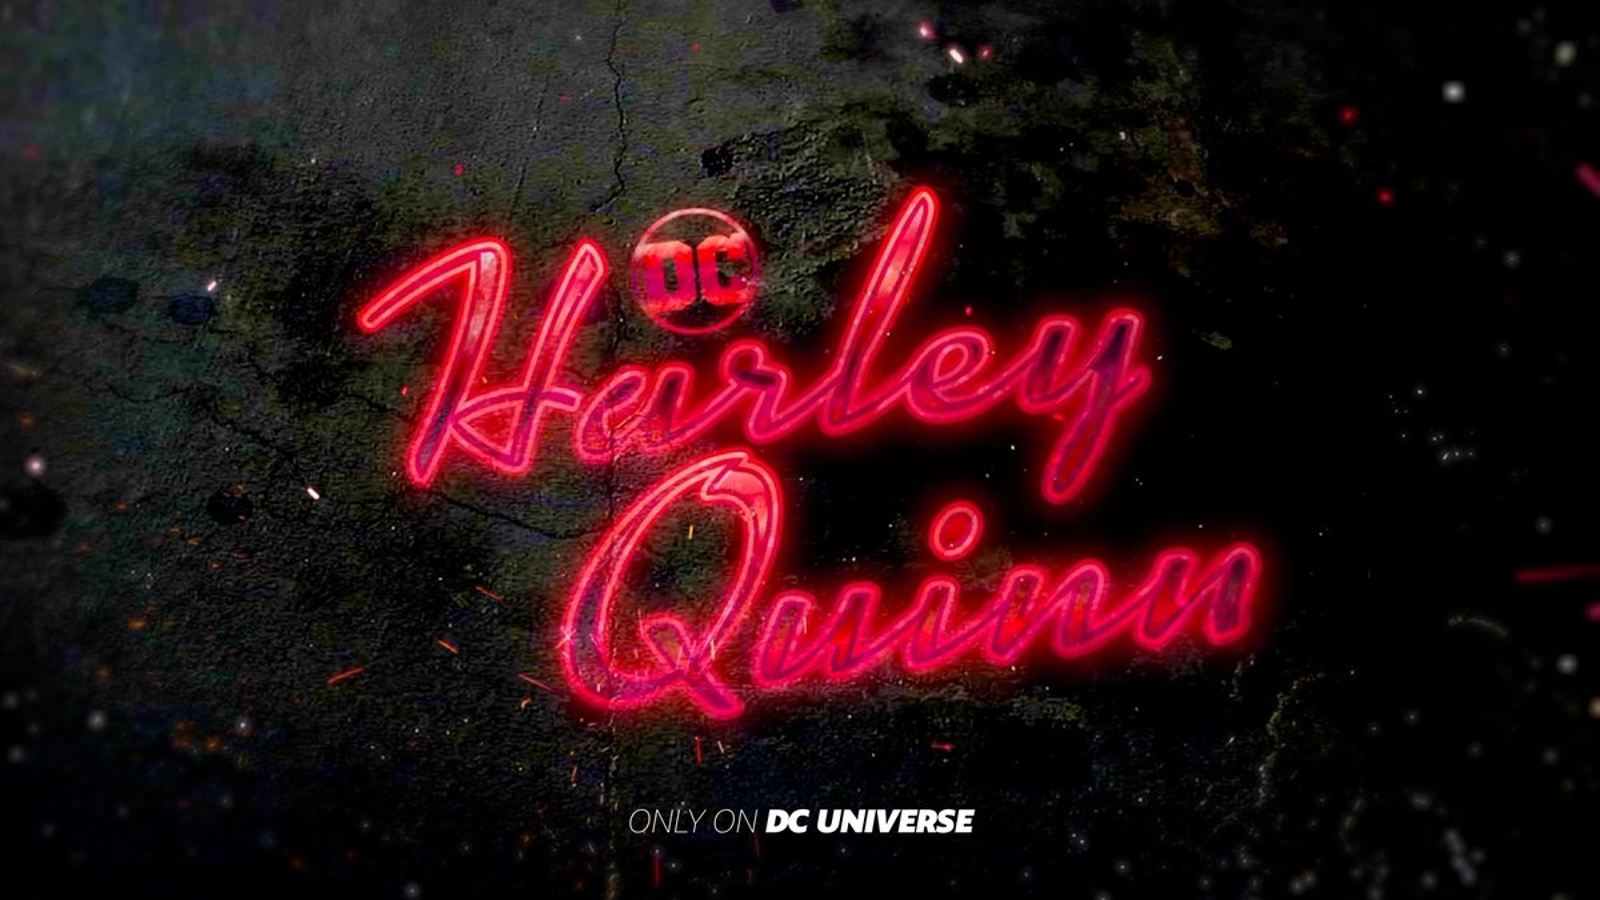 The logo for the new Harley Quinn show.